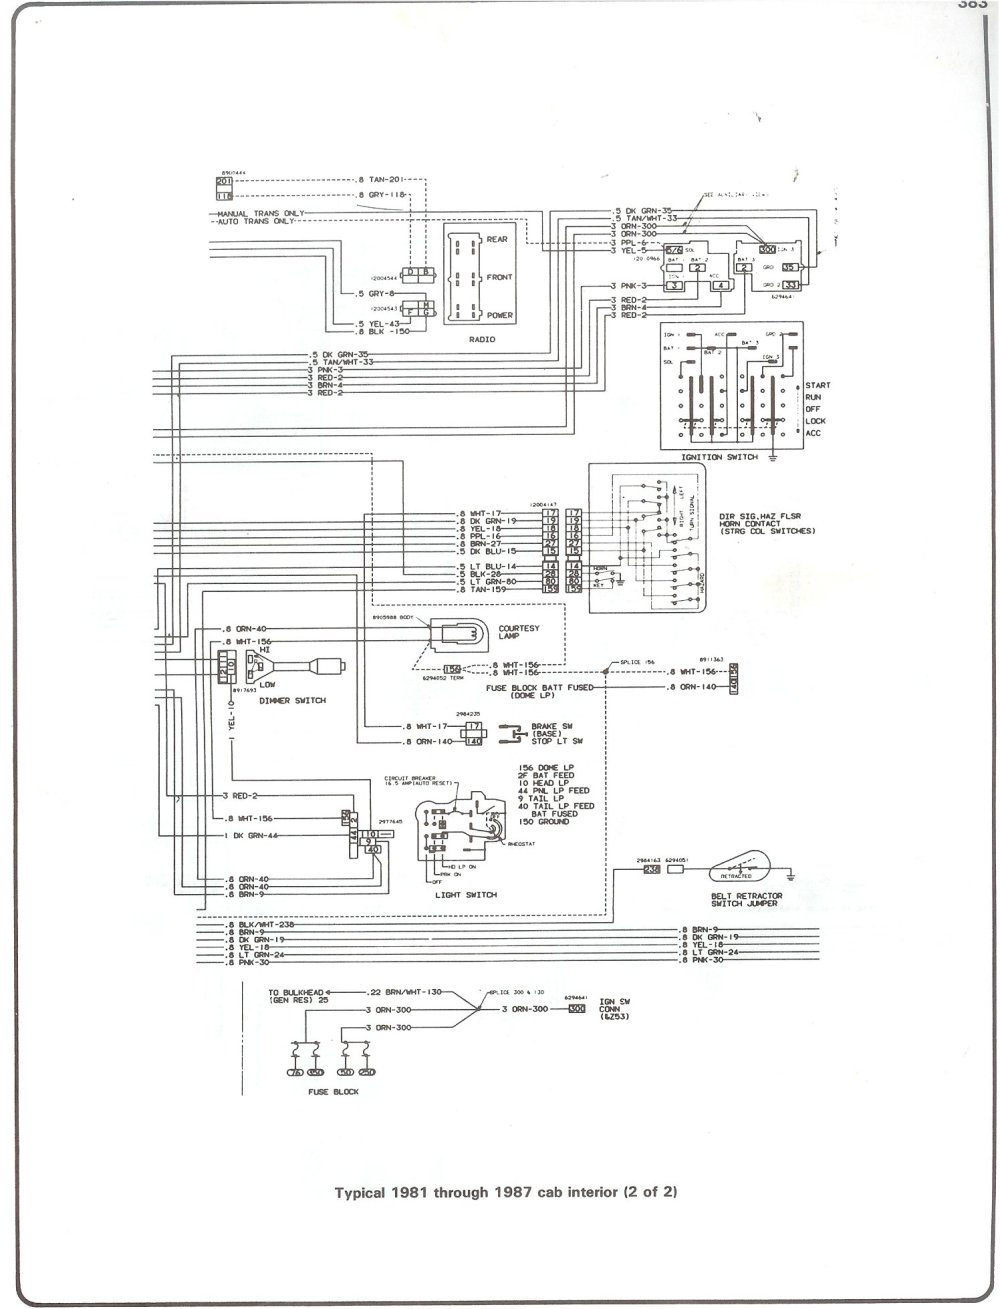 medium resolution of 1987 chevrolet suburban wiring schematic wiring diagram sample 1970 chevy suburban fuse box